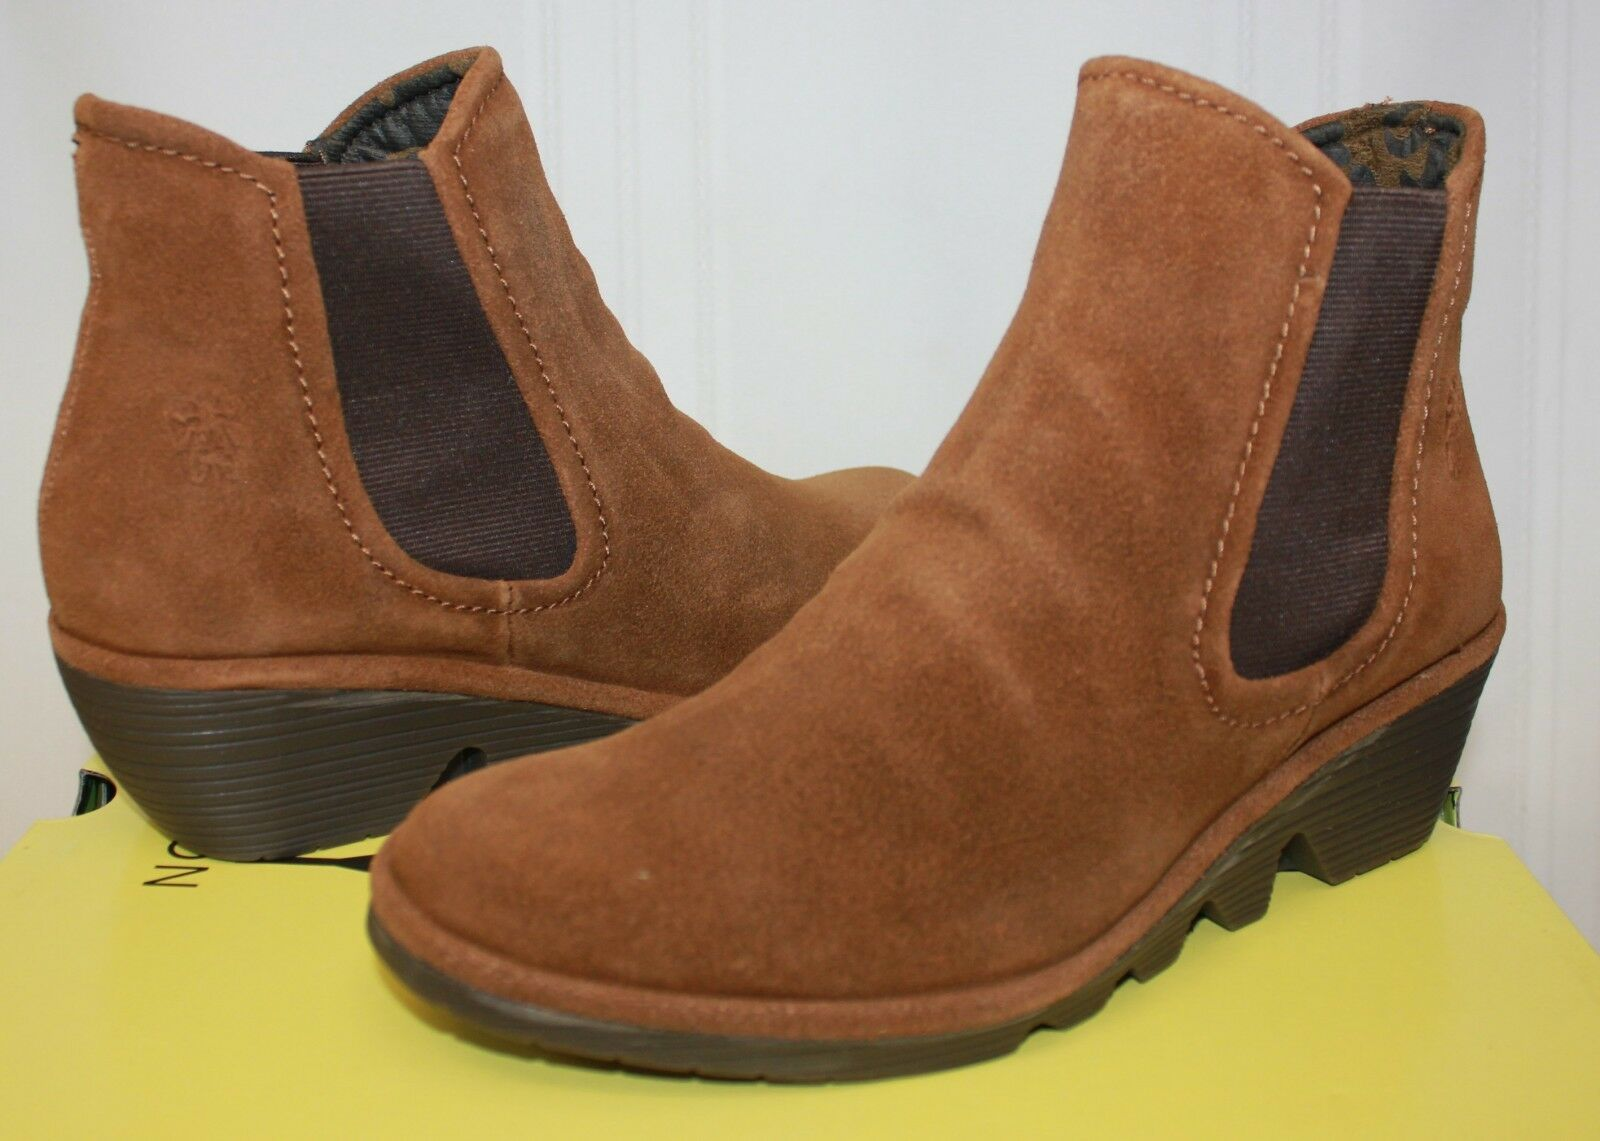 FLY LONDON Phil Wedge Chelsea Booties Camel Brown Oil Suede New With Box